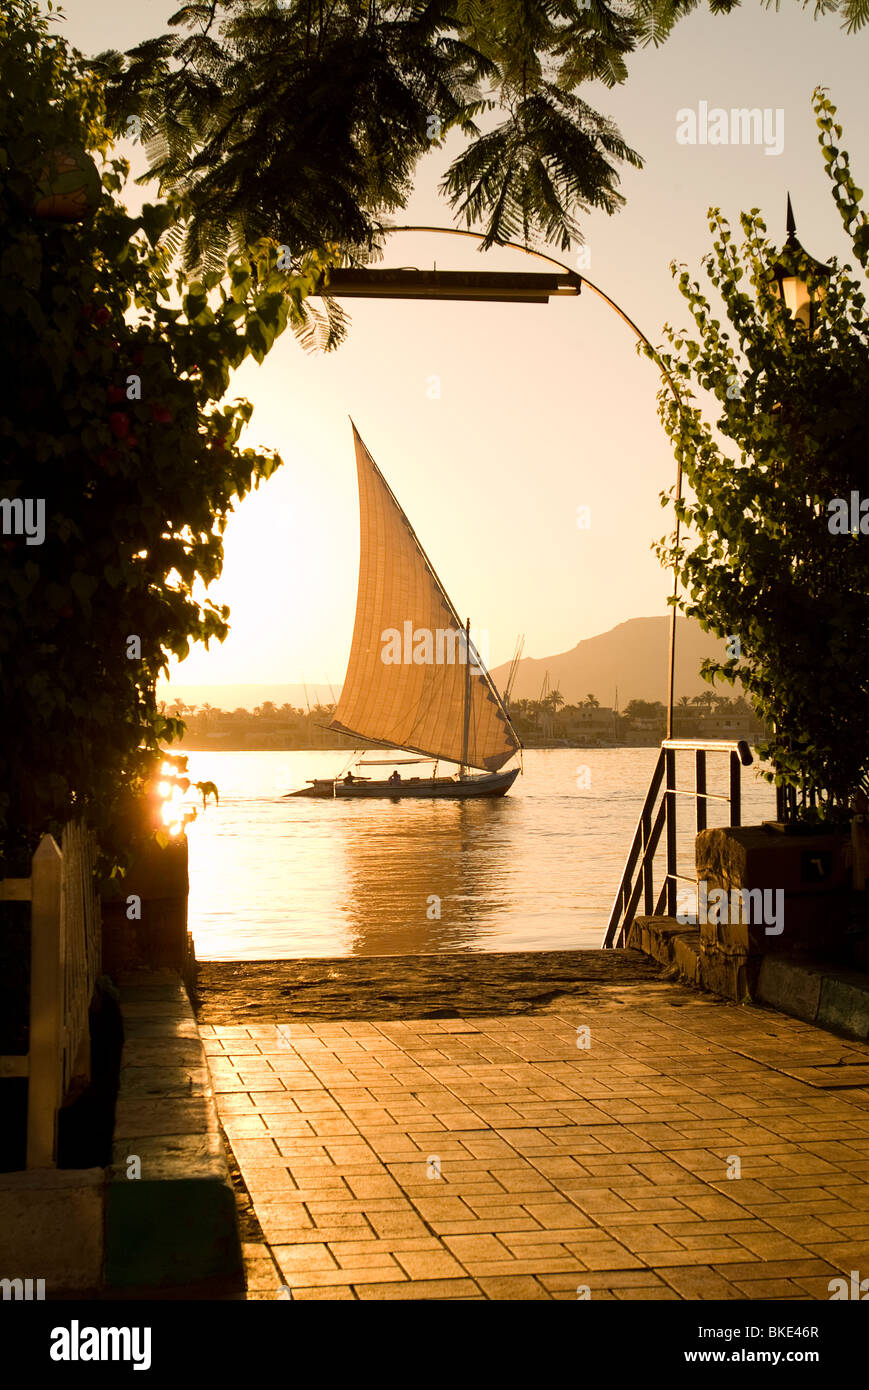 Sunset on the Nile with Felucca, Luxor, Egypt - Stock Image